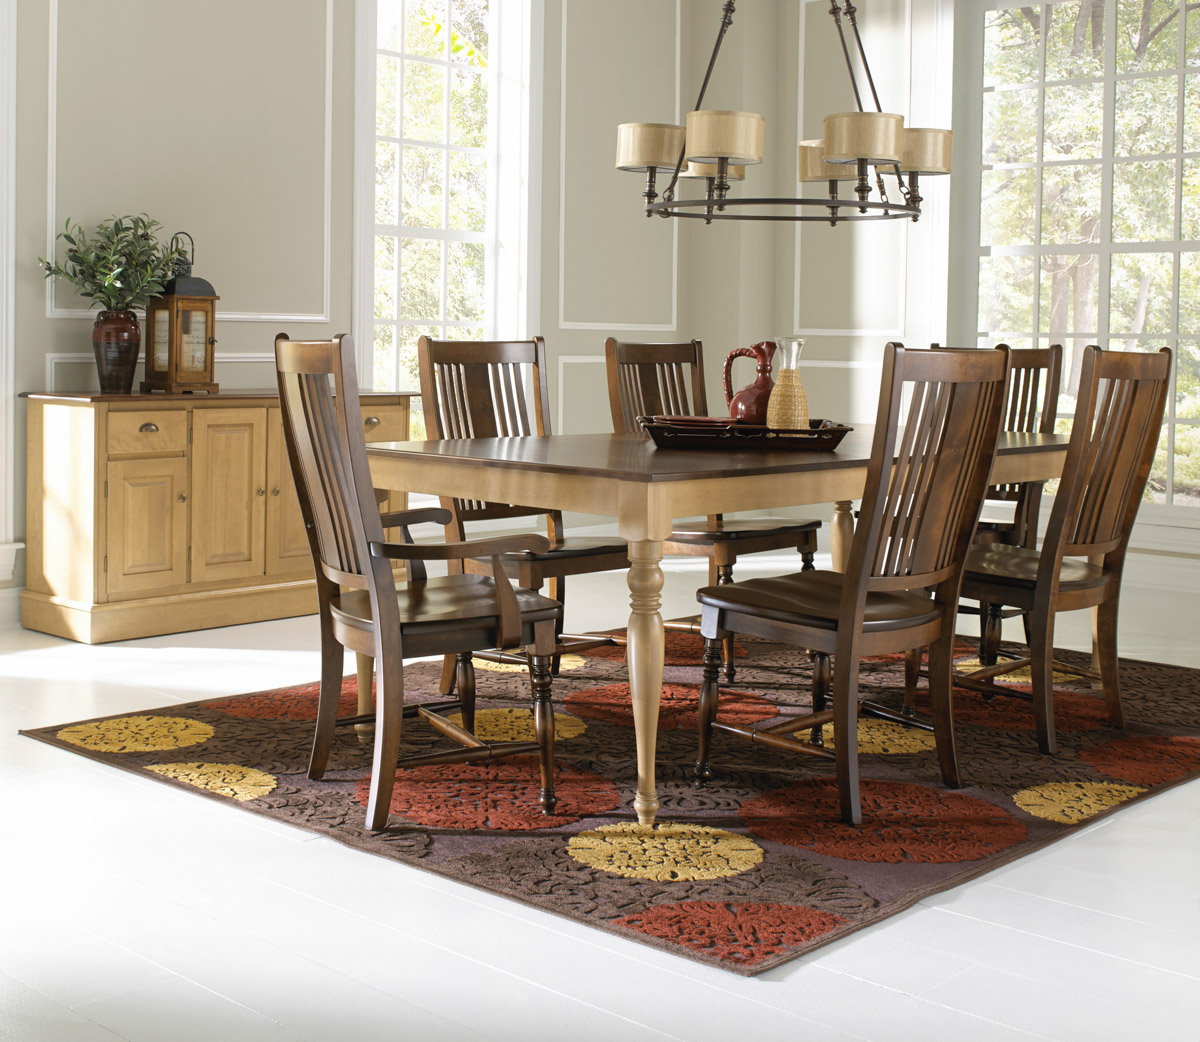 Canadel Custom Dining Room Concepts